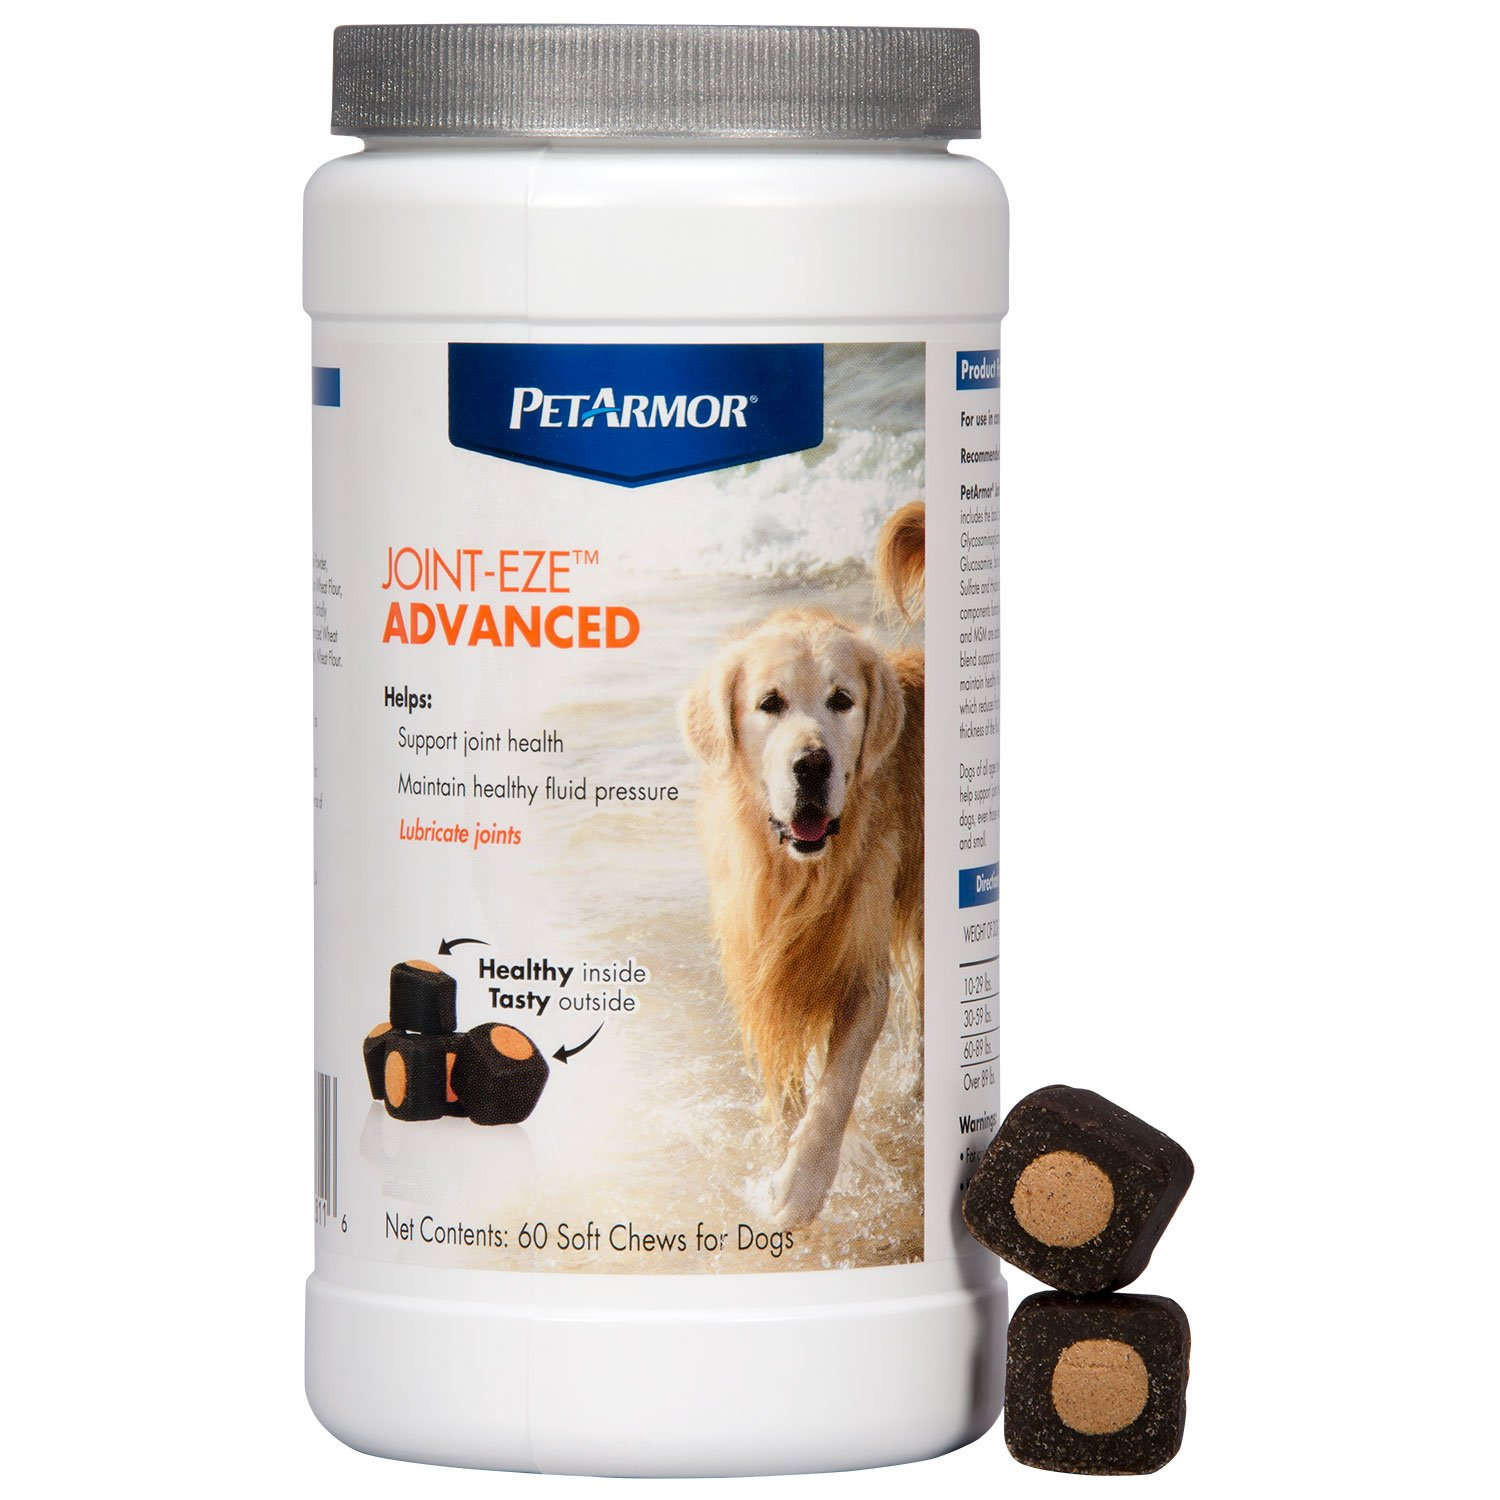 PETARMOR Joint-Eze Advanced for Dogs, 60 count by PETARMOR (Image #1)